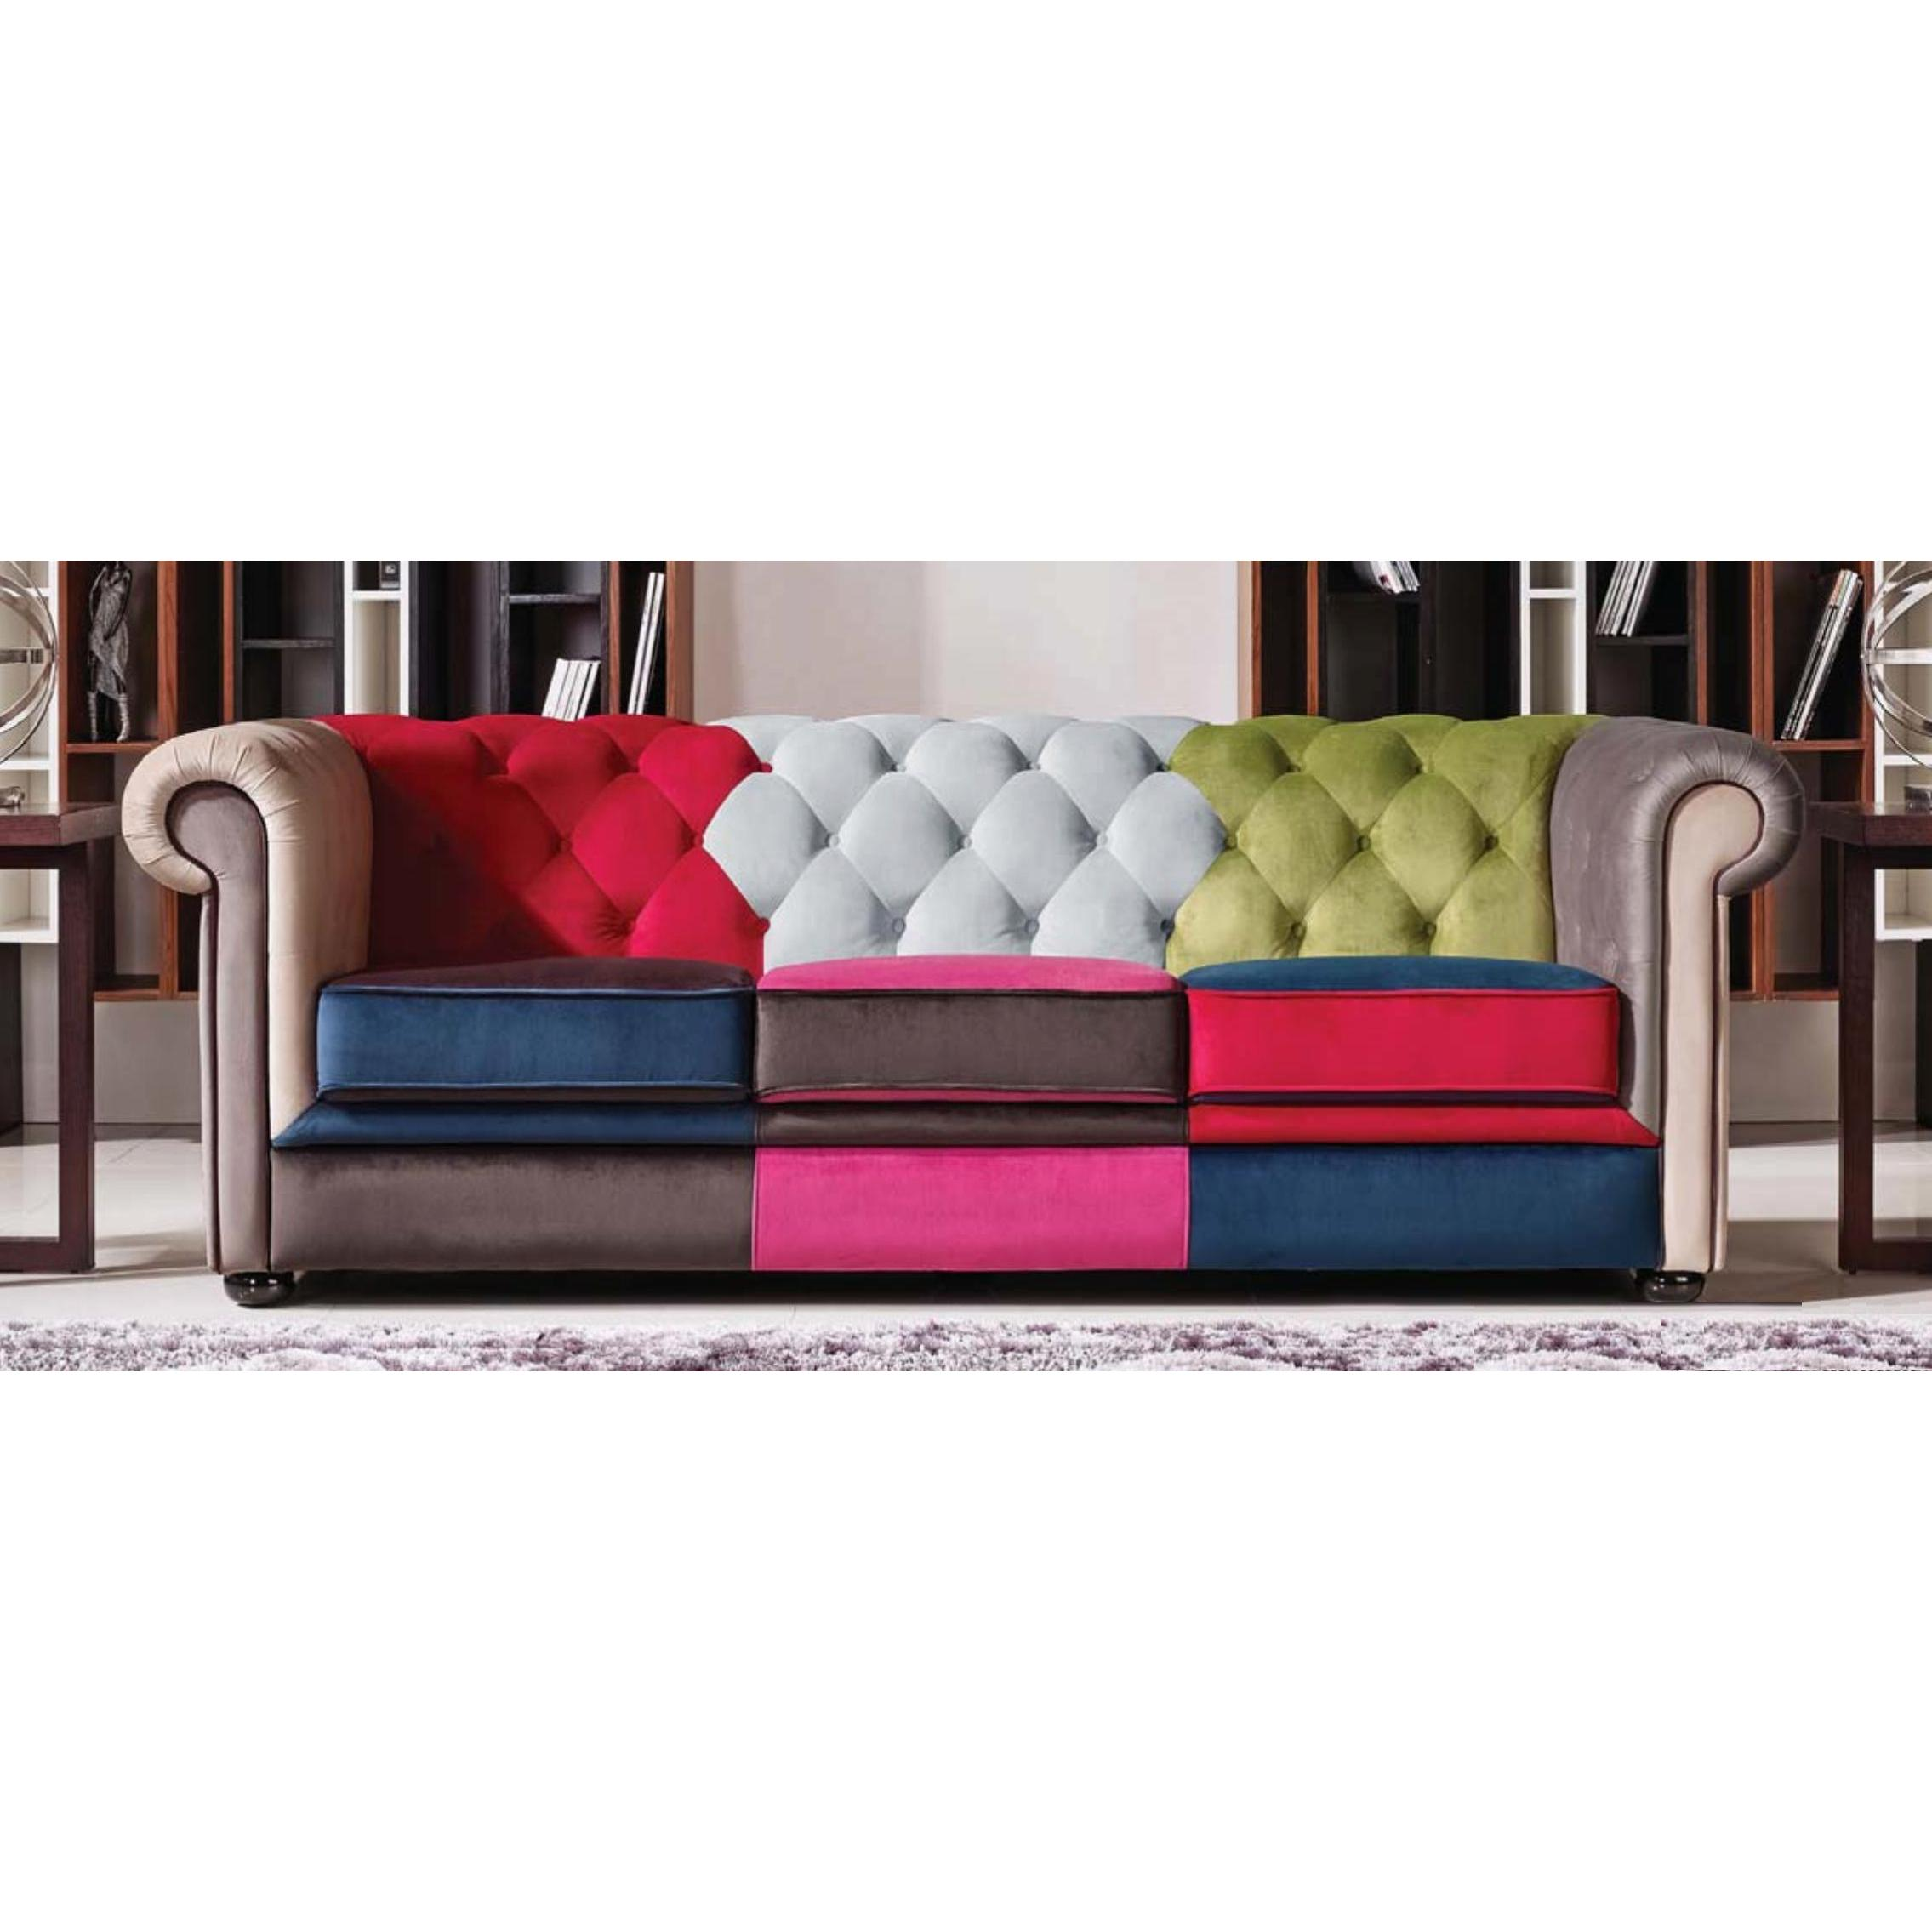 Cool Sofa Patchwork Beste Wahl